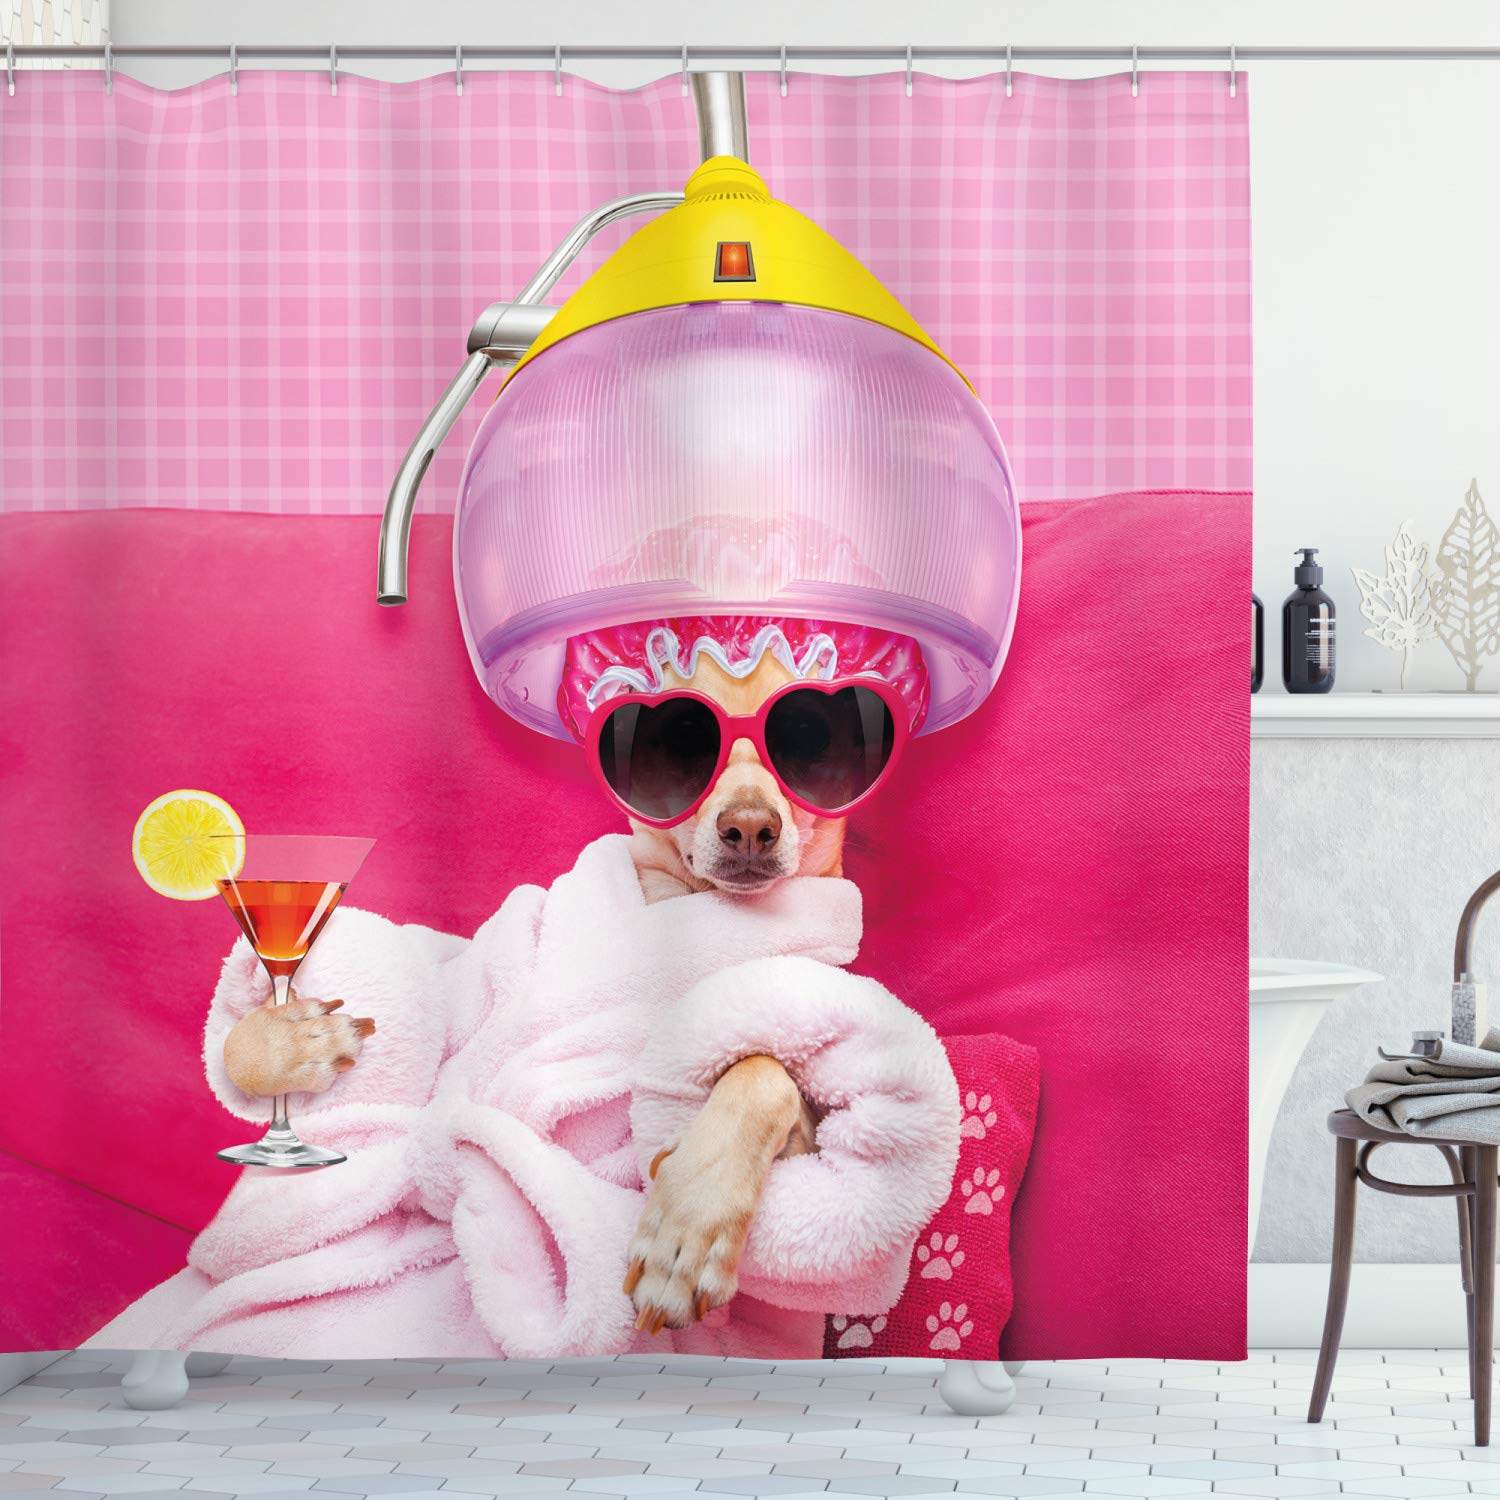 Fine Ambesonne Funny Shower Curtain By Chihuahua Dog Relaxing And Lying In Wellness Spa Fashion Puppy Comic Print Fabric Bathroom Decor Set With Hooks Ocoug Best Dining Table And Chair Ideas Images Ocougorg